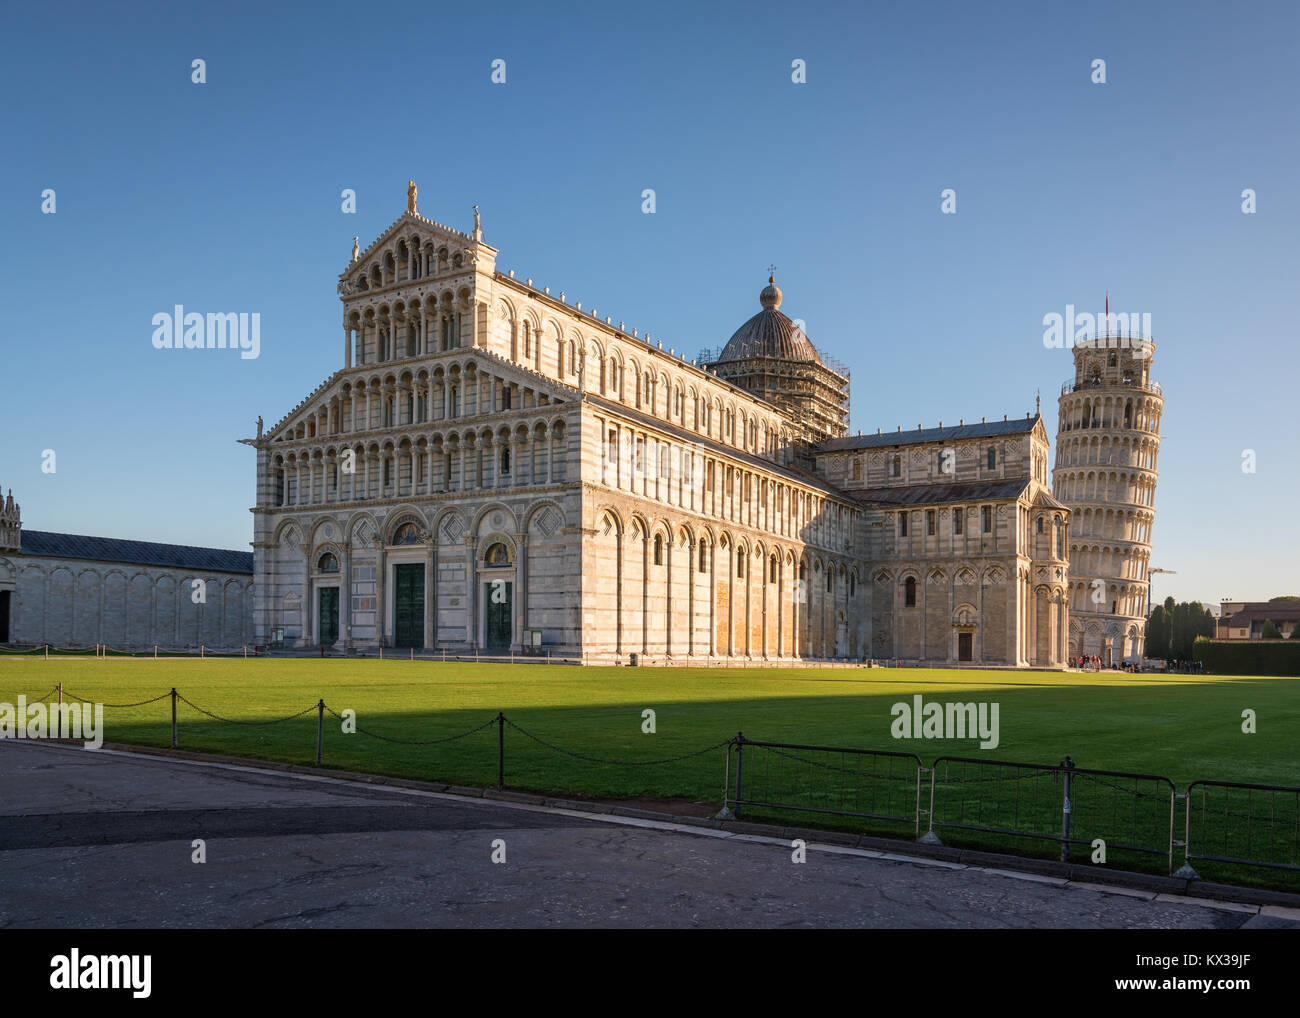 Pisa,Piazza dei Miracoli (Square of Miracles), with the Cathedral and the leaning tower, Unesco world heritage site,Italy. - Stock Image